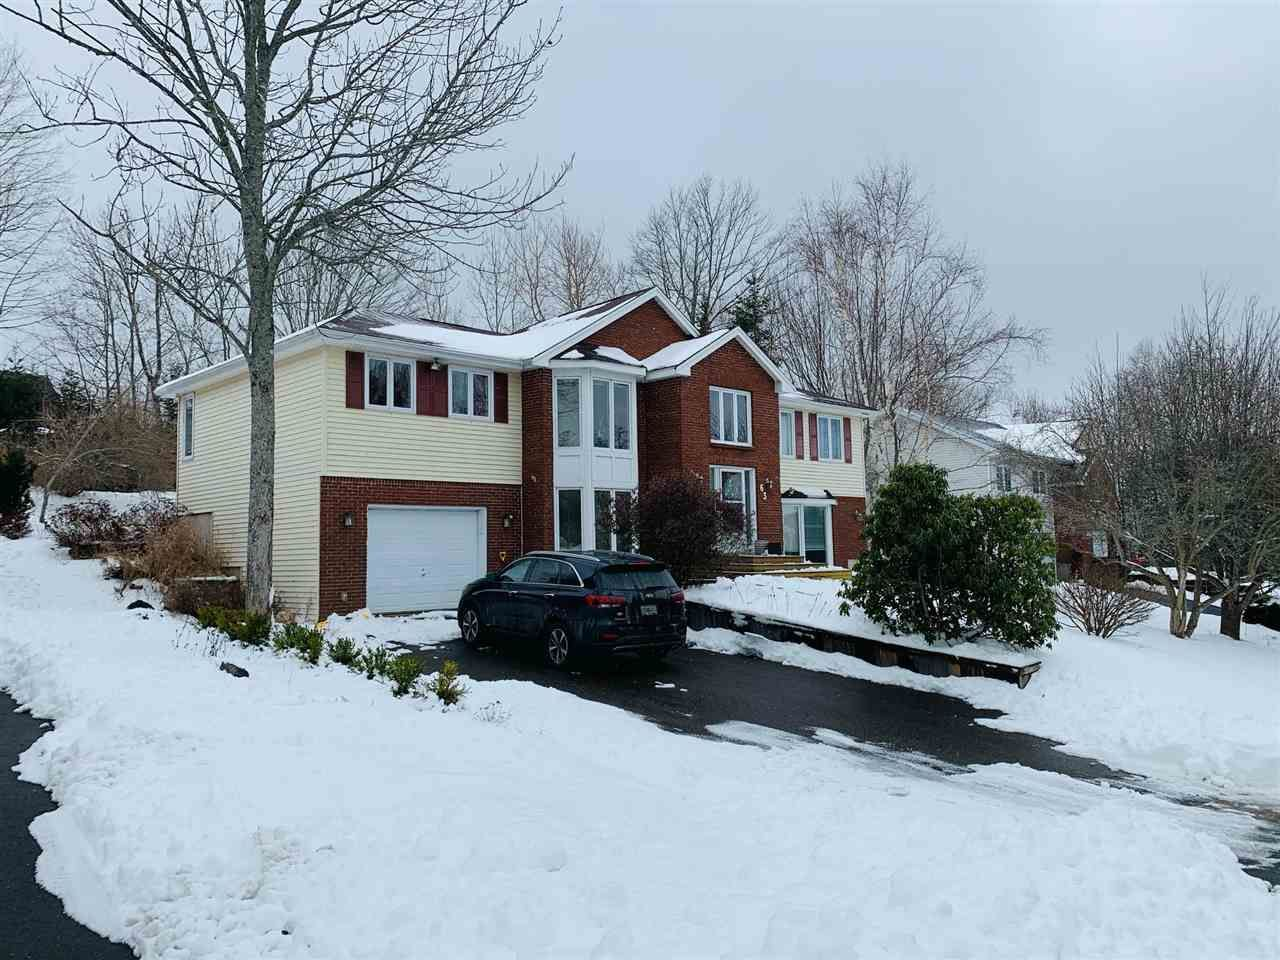 Main Photo: 63 Alicia Boulevard in Kentville: 404-Kings County Residential for sale (Annapolis Valley)  : MLS®# 202100209